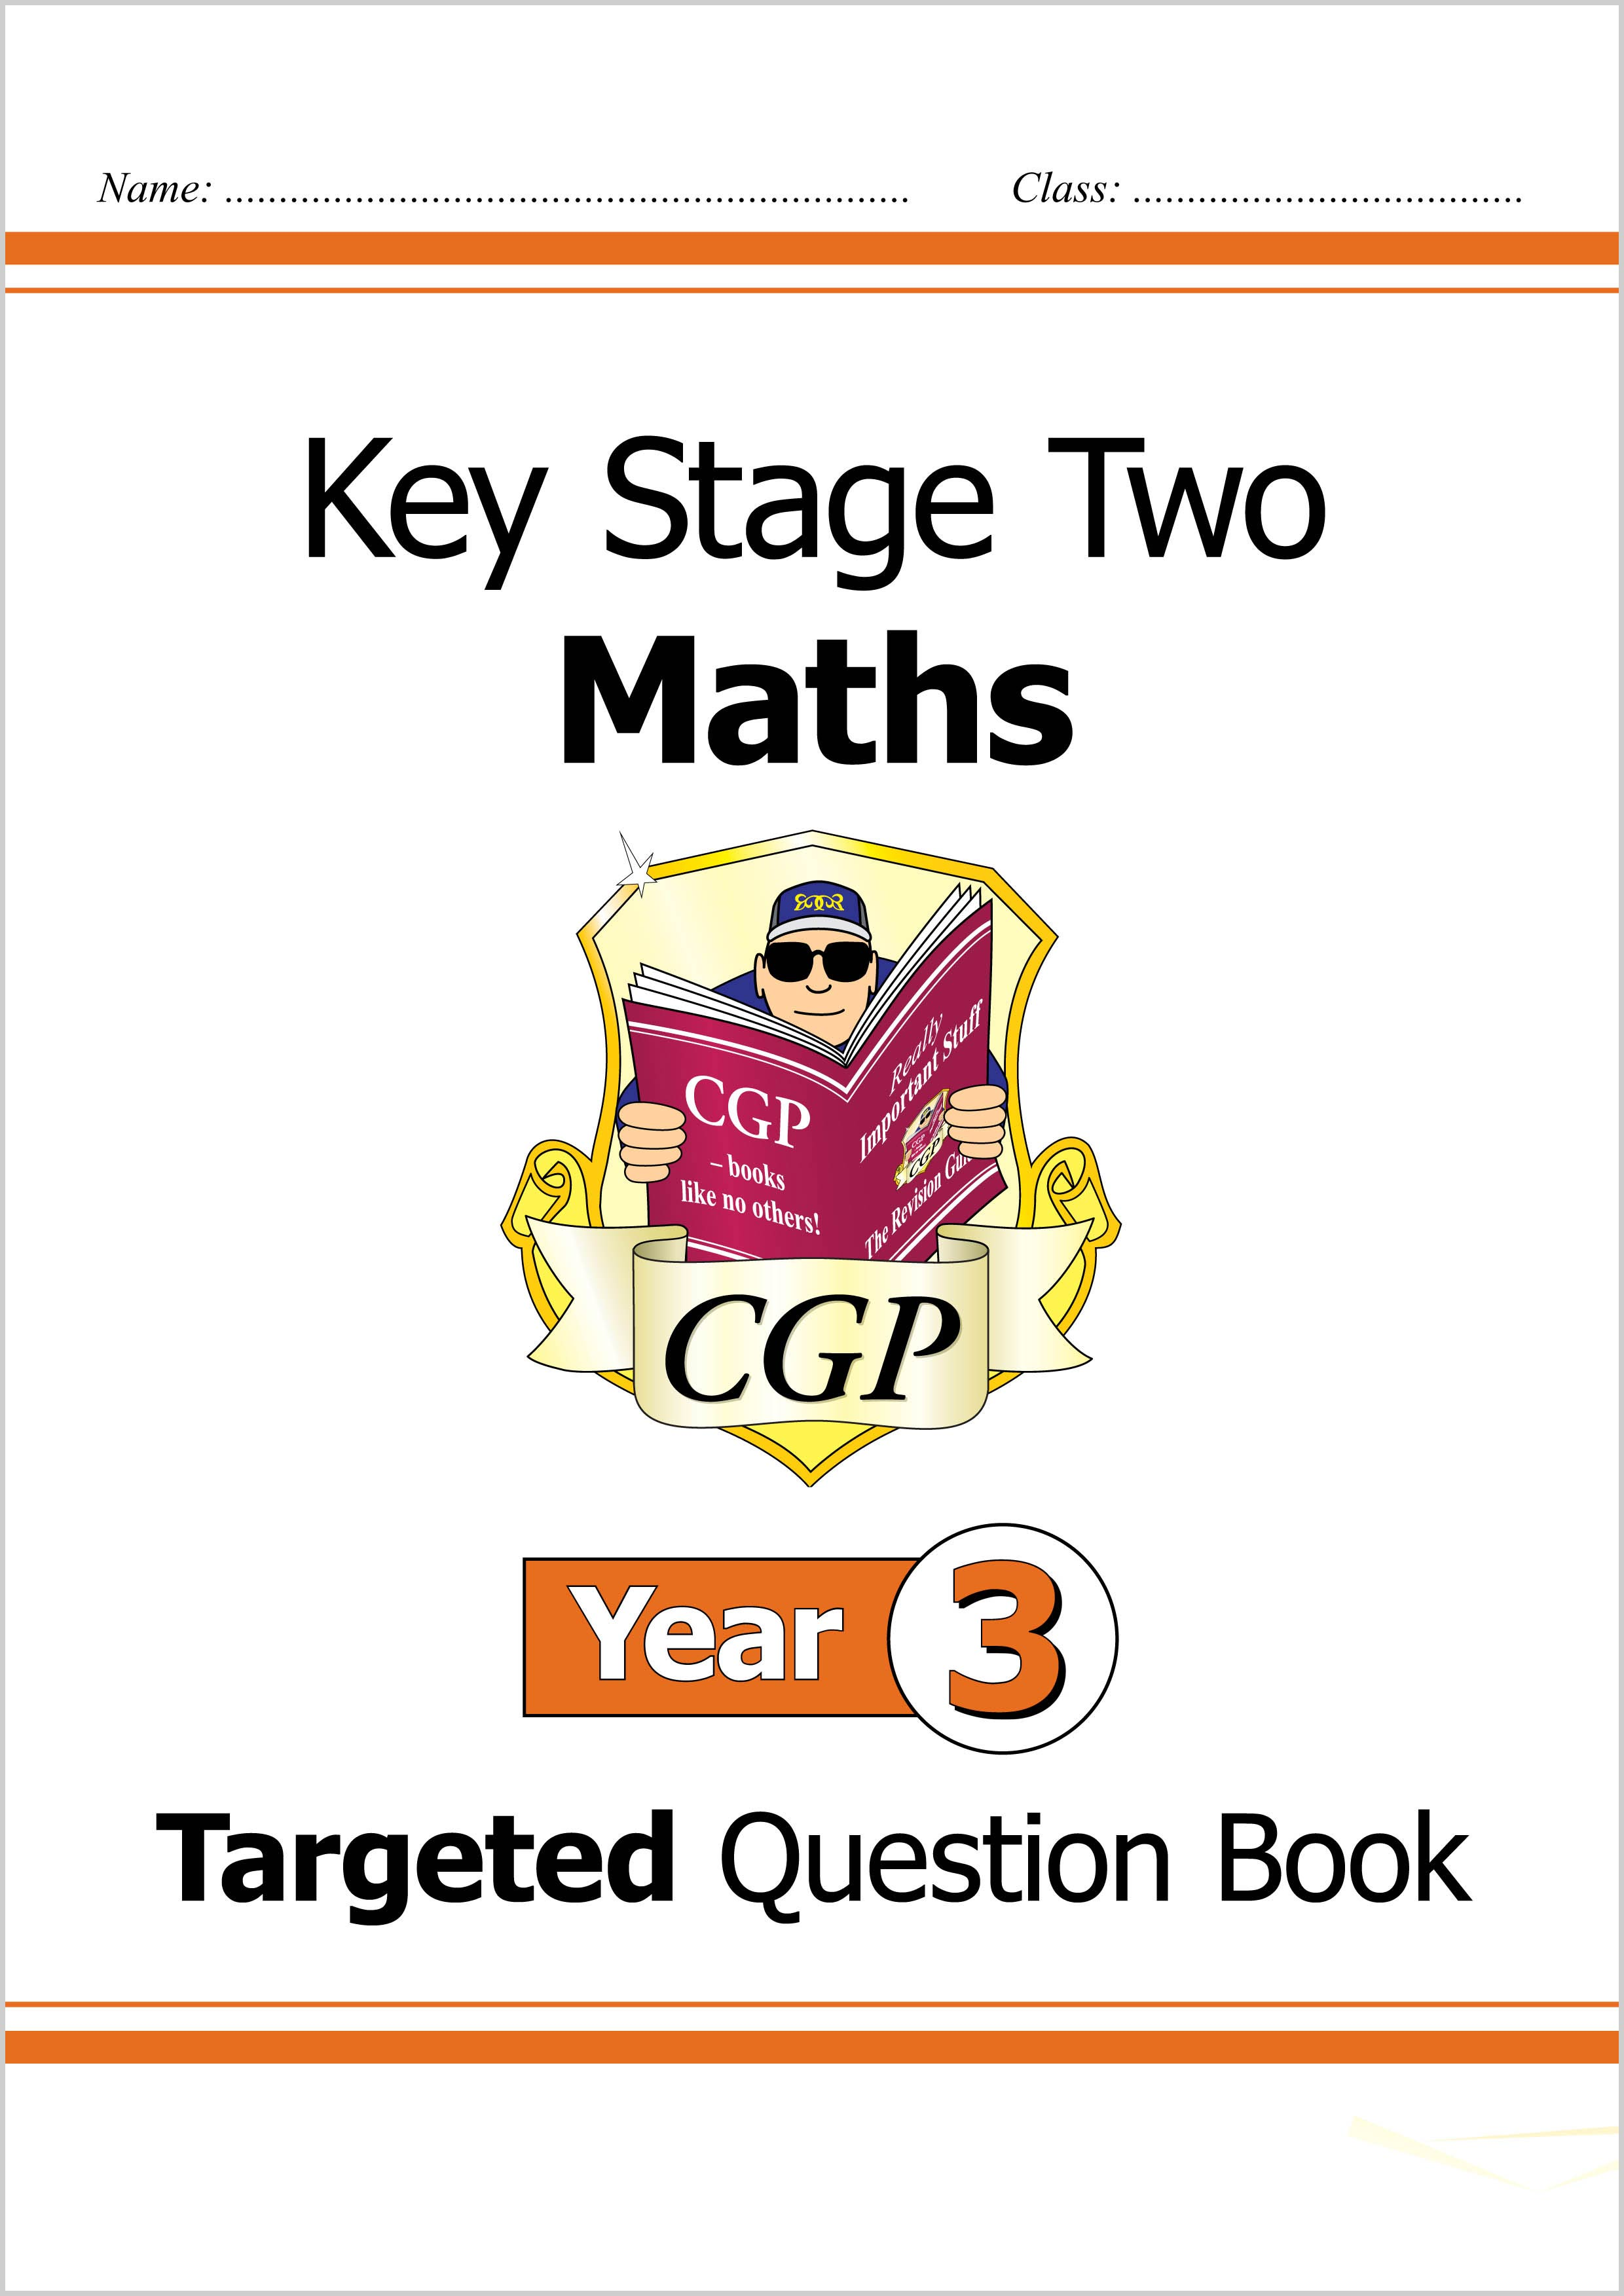 M3Q23DK - KS2 Maths Targeted Question Book - Year 3